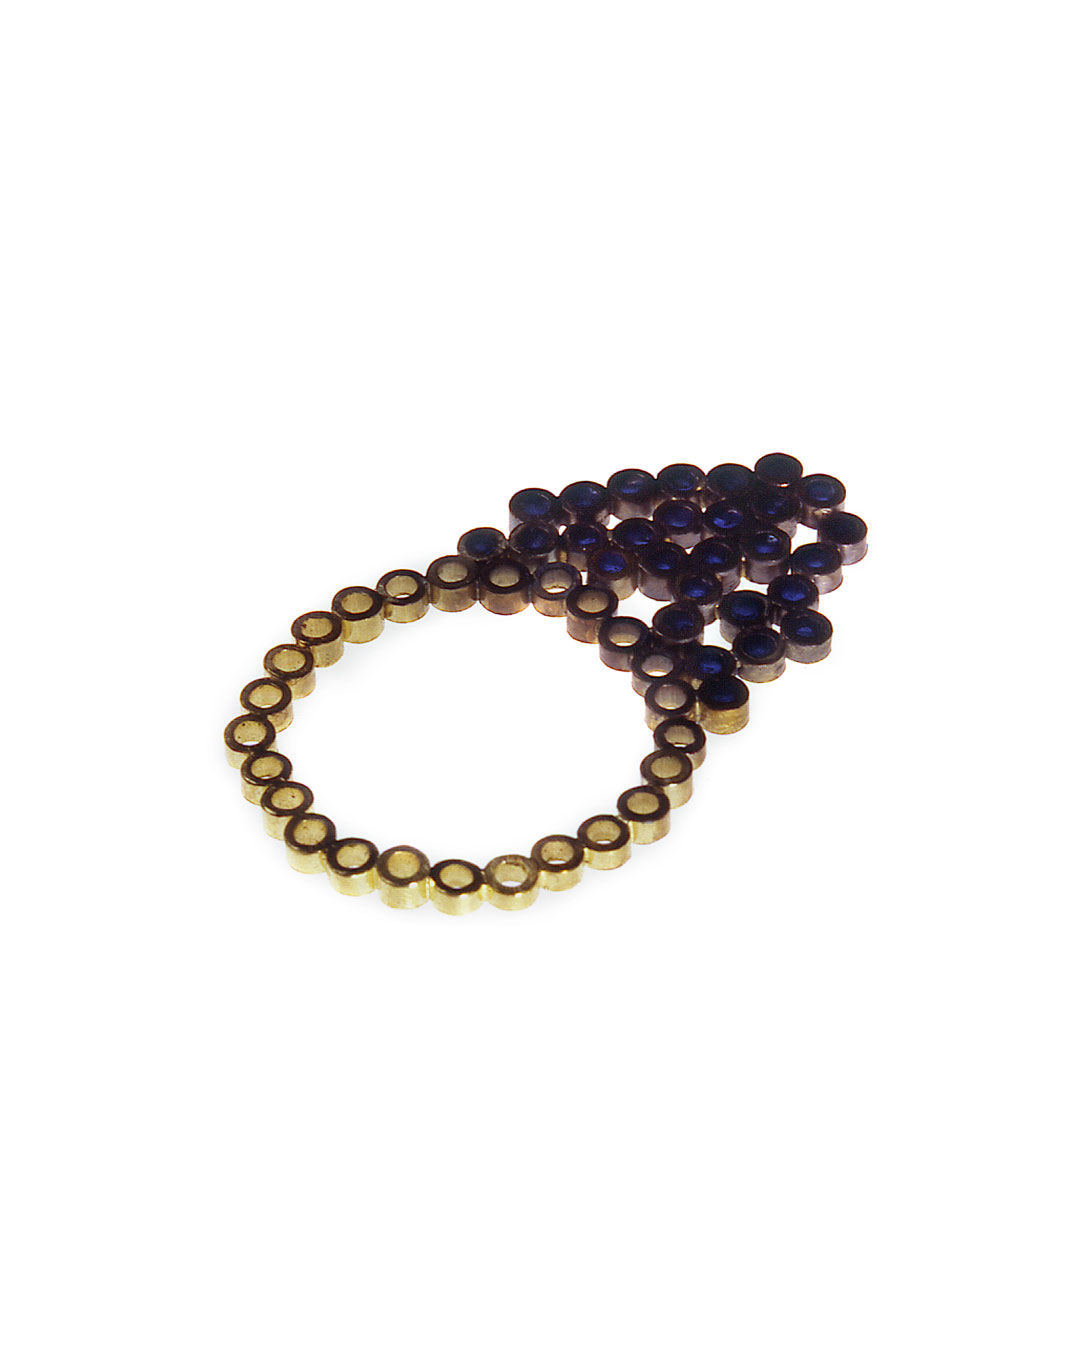 Julie Mollenhauer, untitled, 1999, ring; 18ct gold, glass, 35 x 22 mm, €880